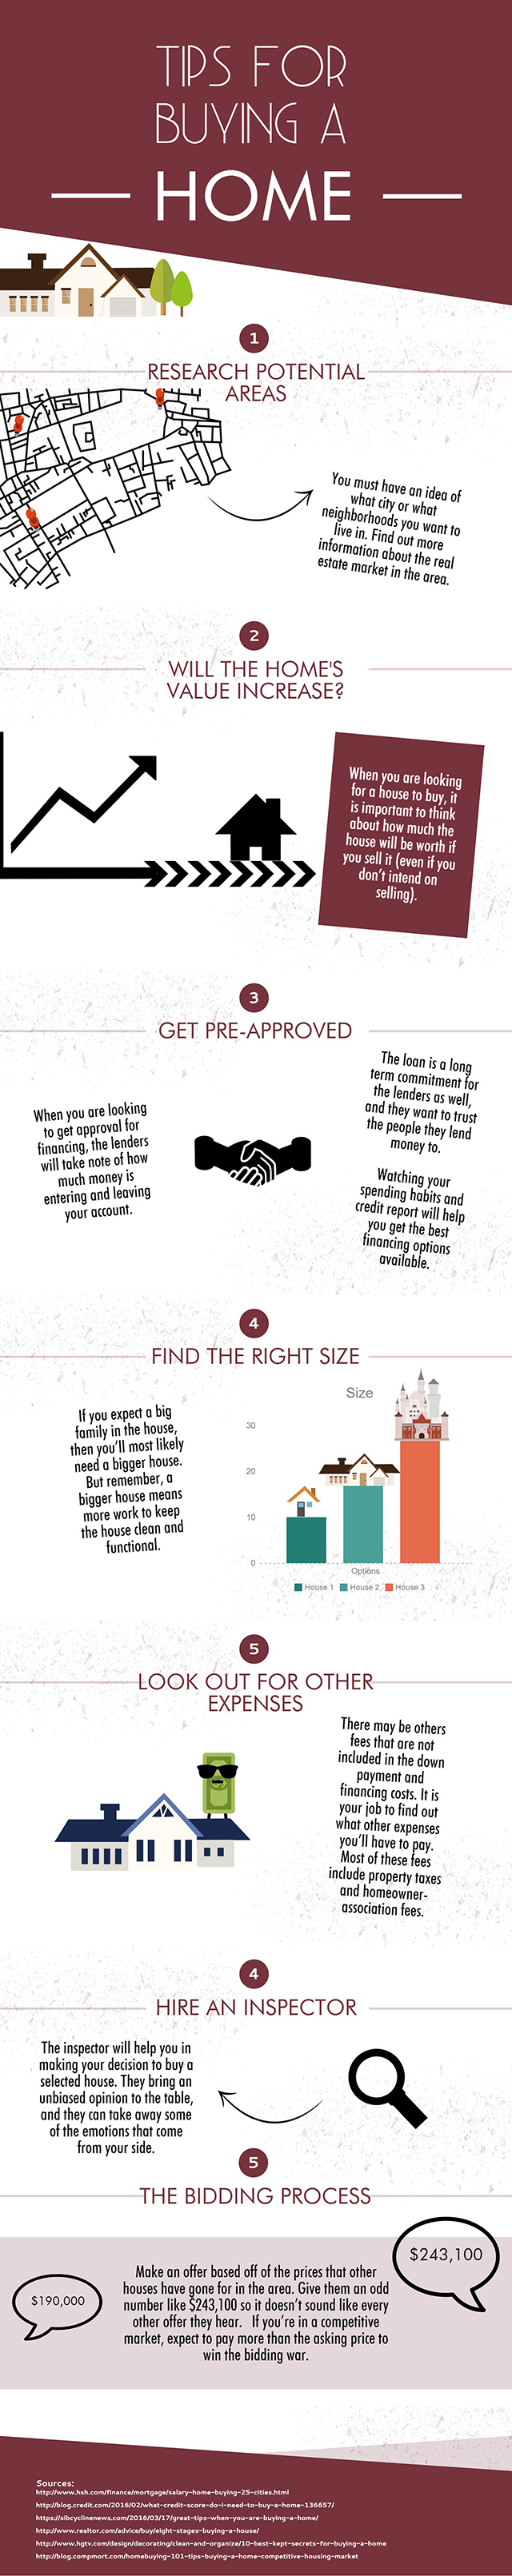 Tips for buying a home - Infographic